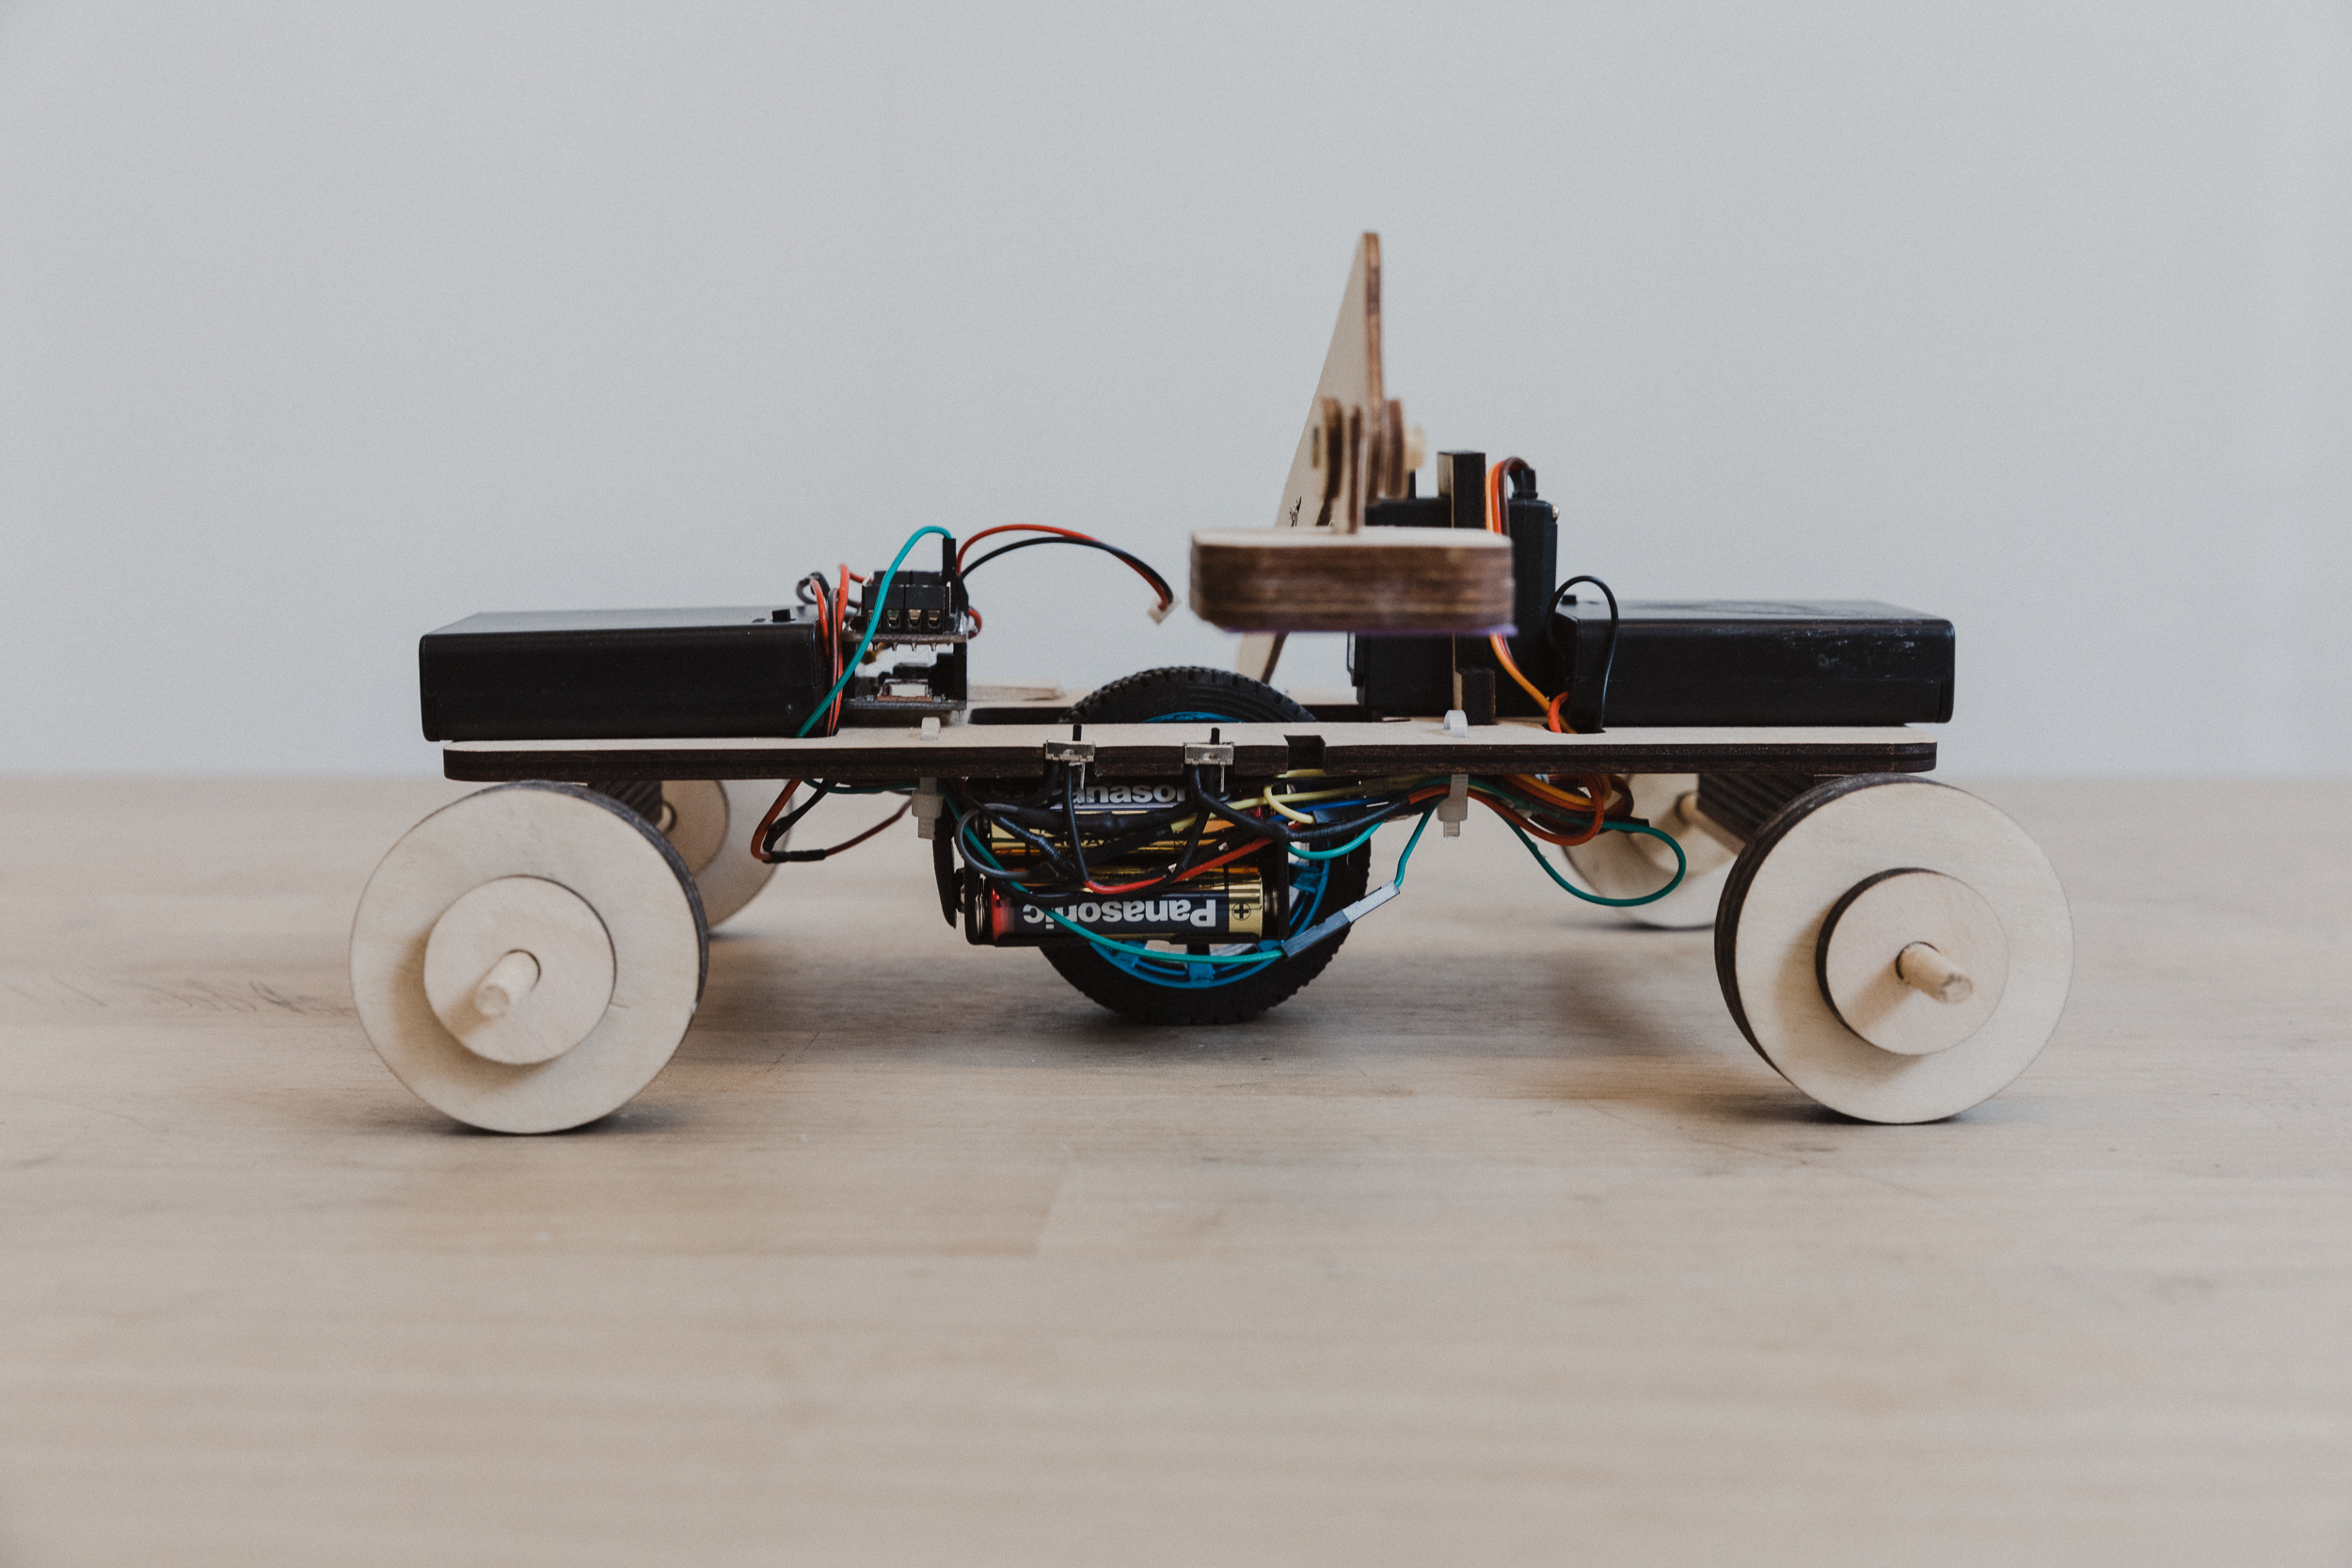 BLUETOOTH VEHICLE: STOPPING ROVER